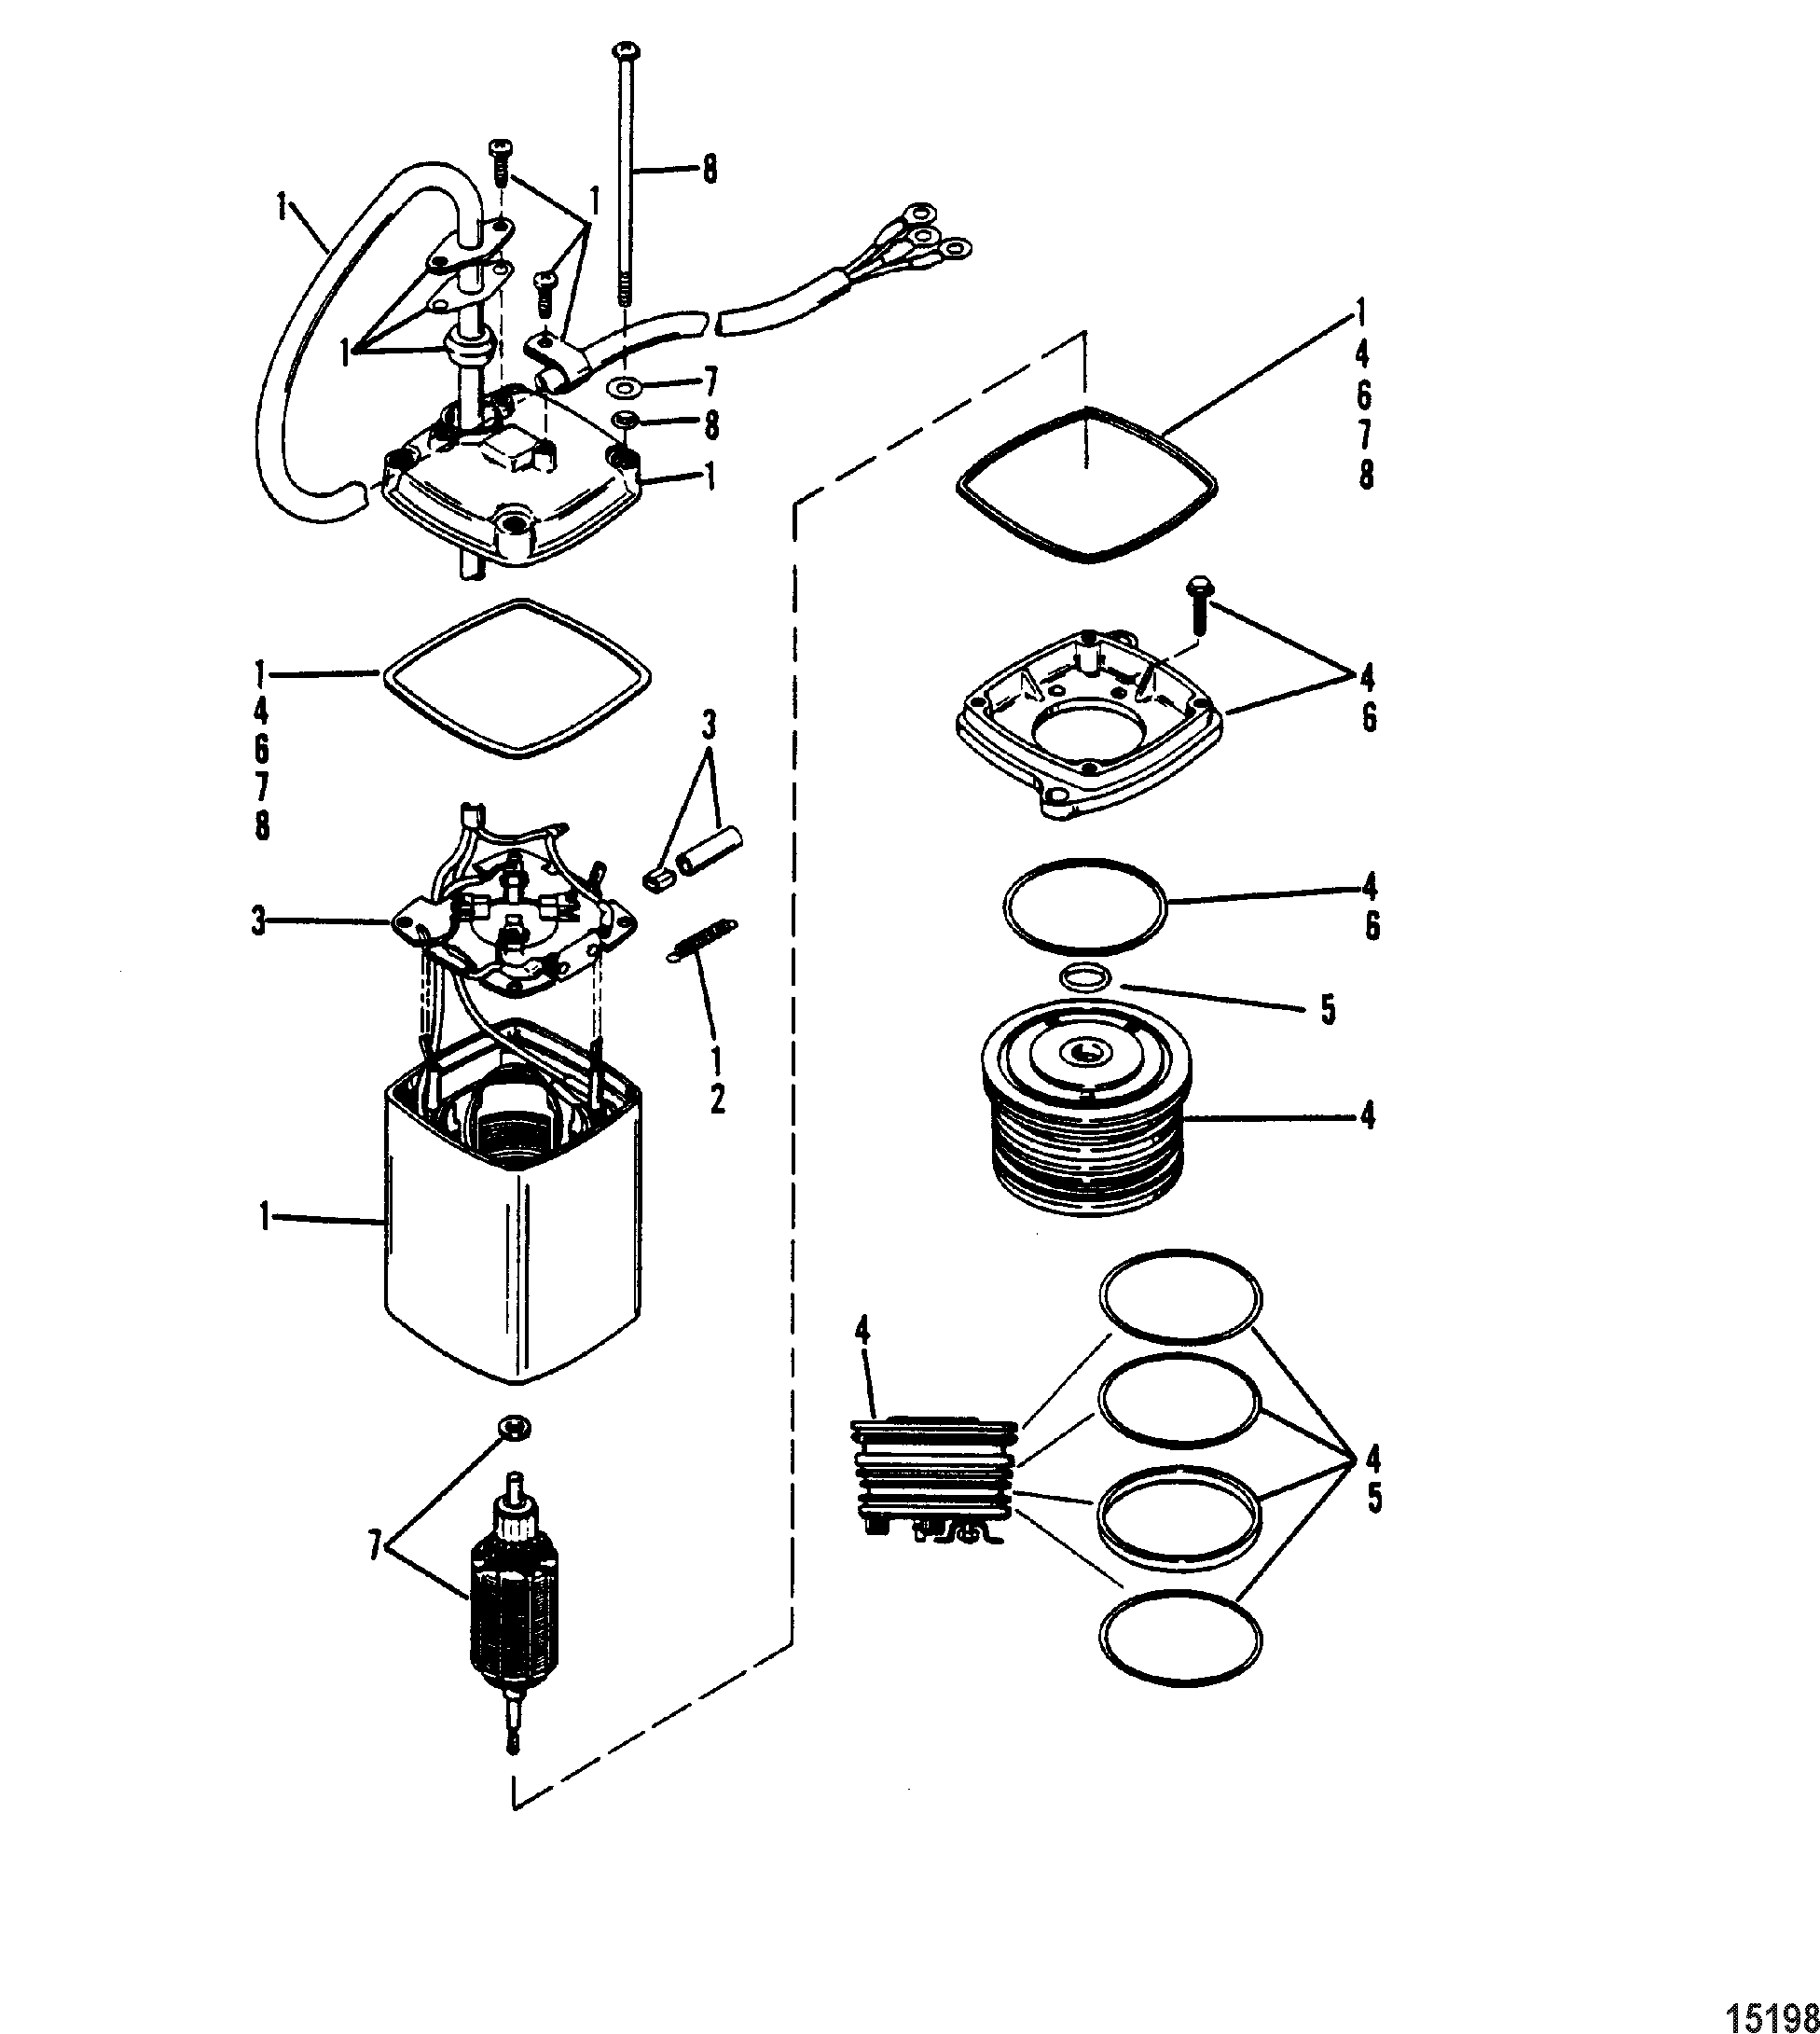 2 Stroke Mercury Outboard Motor Diagram